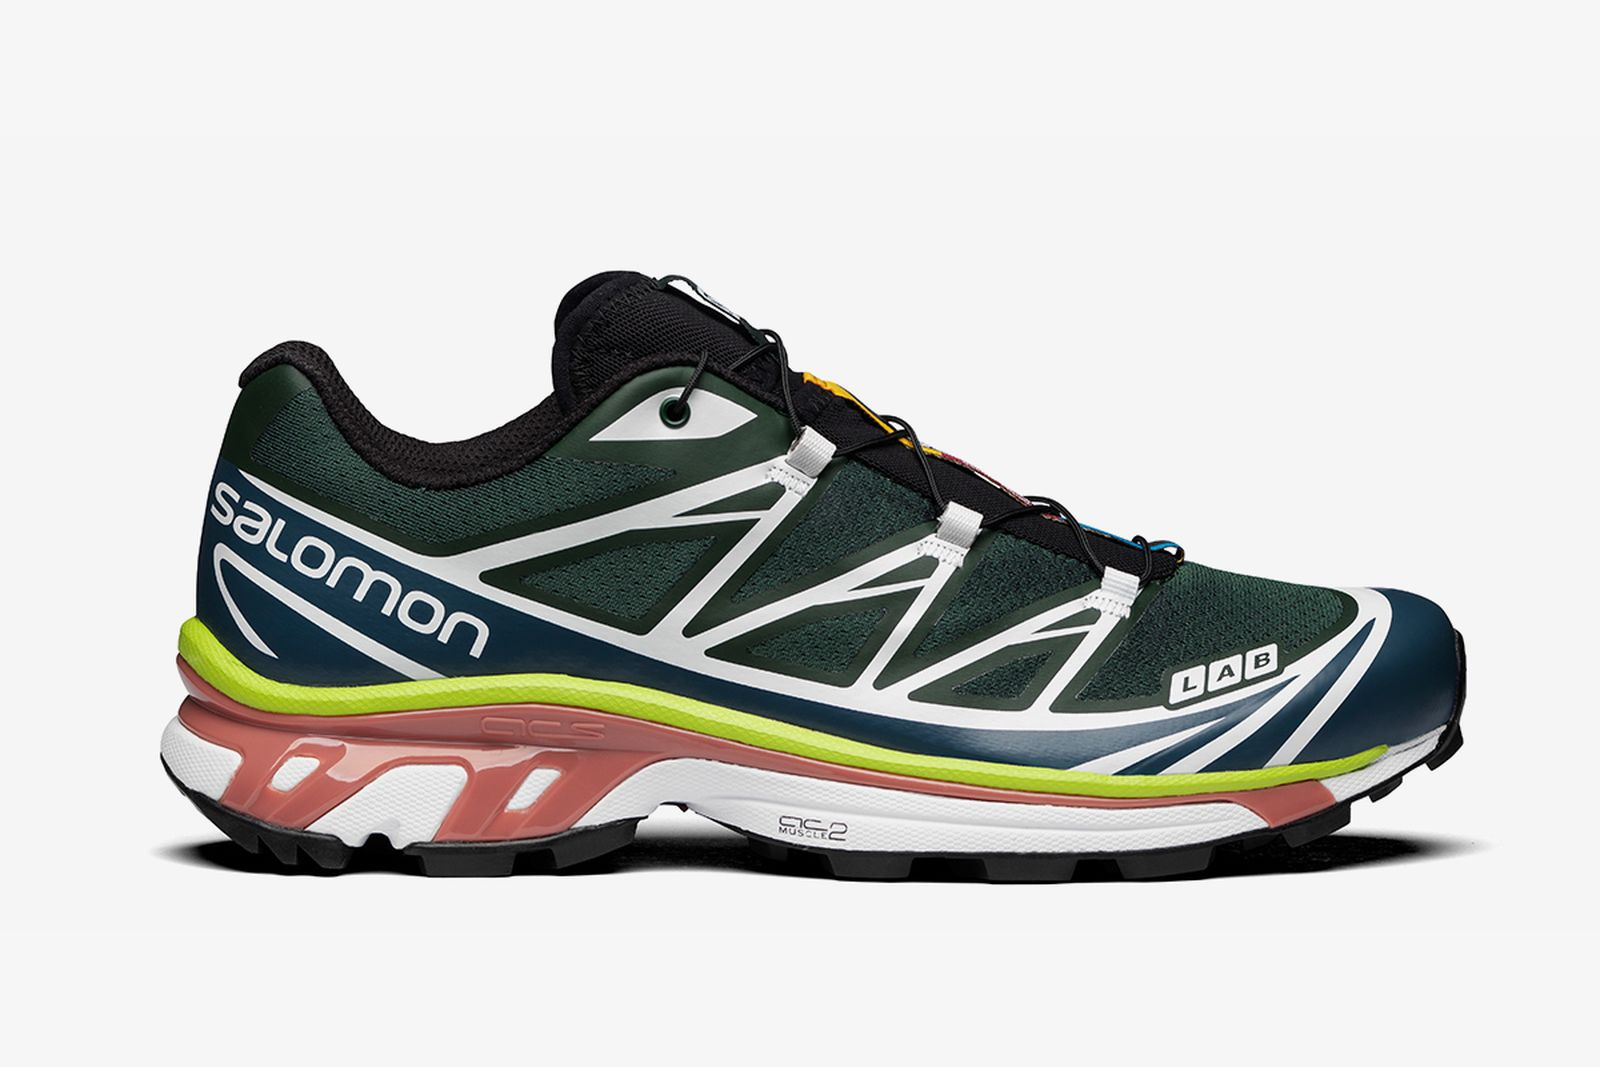 Salomon FW20 sneaker collection product shot